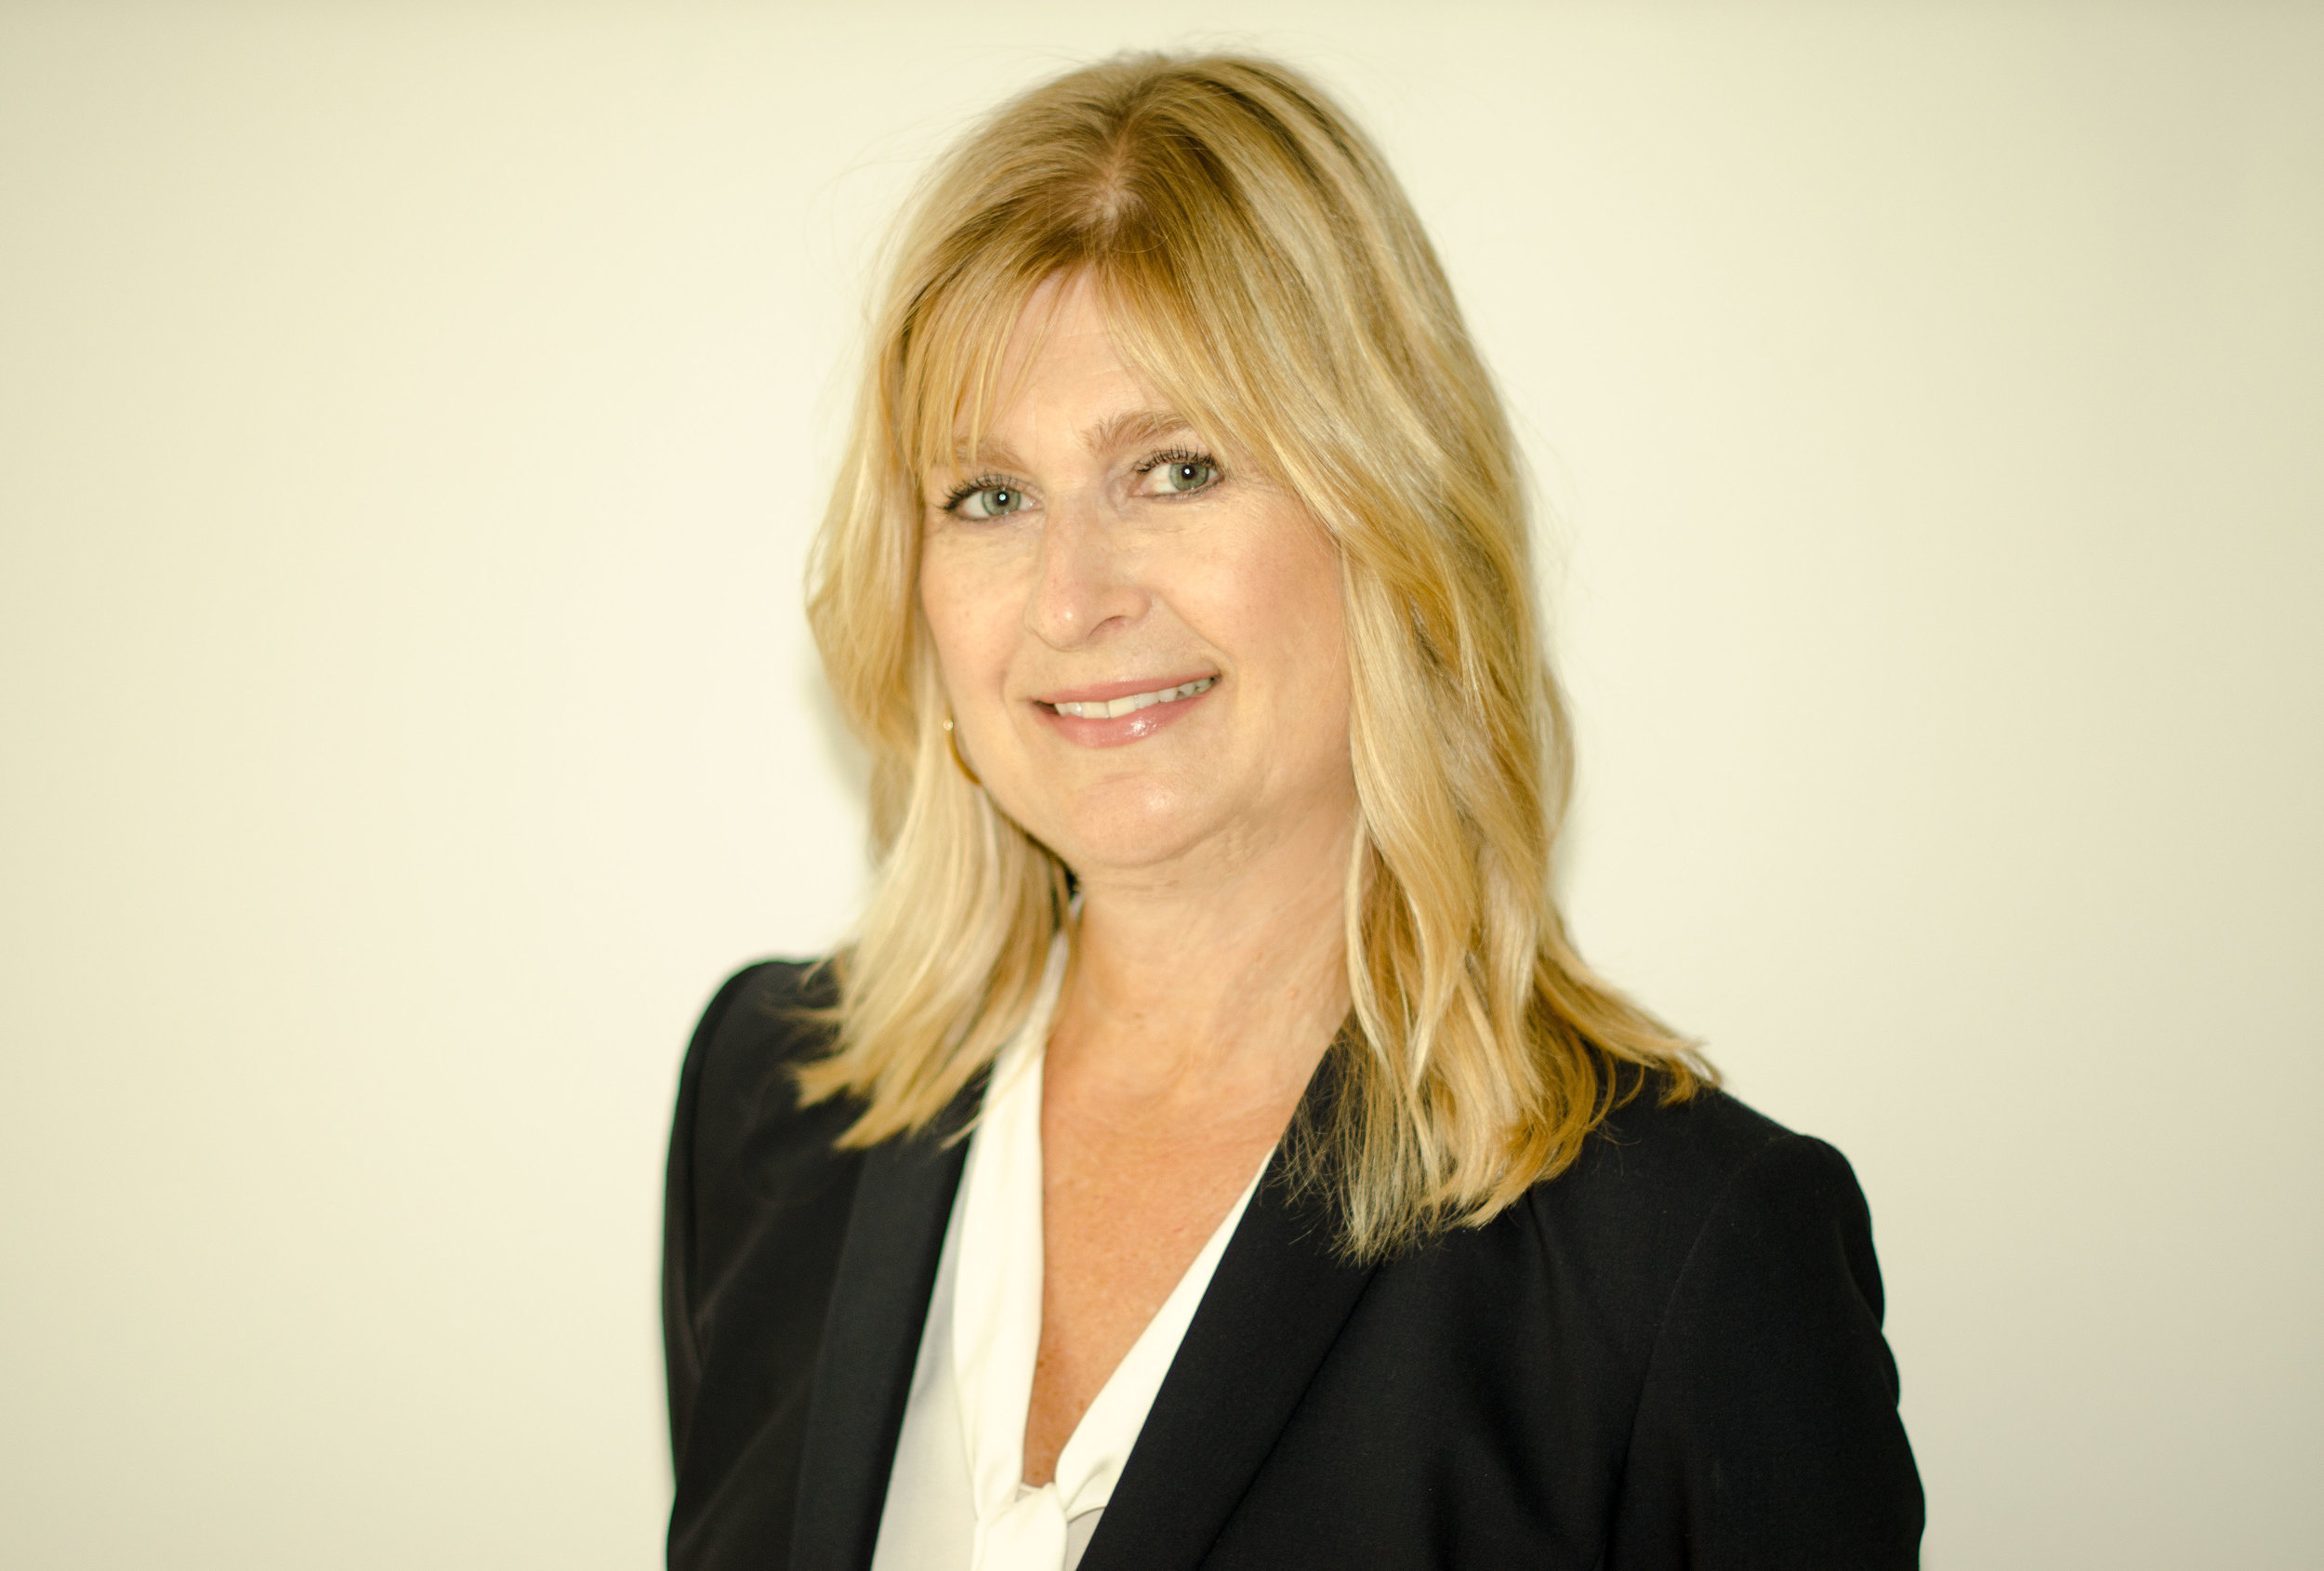 Paula specializes in performance improvement, leadership development, and employee engagement.